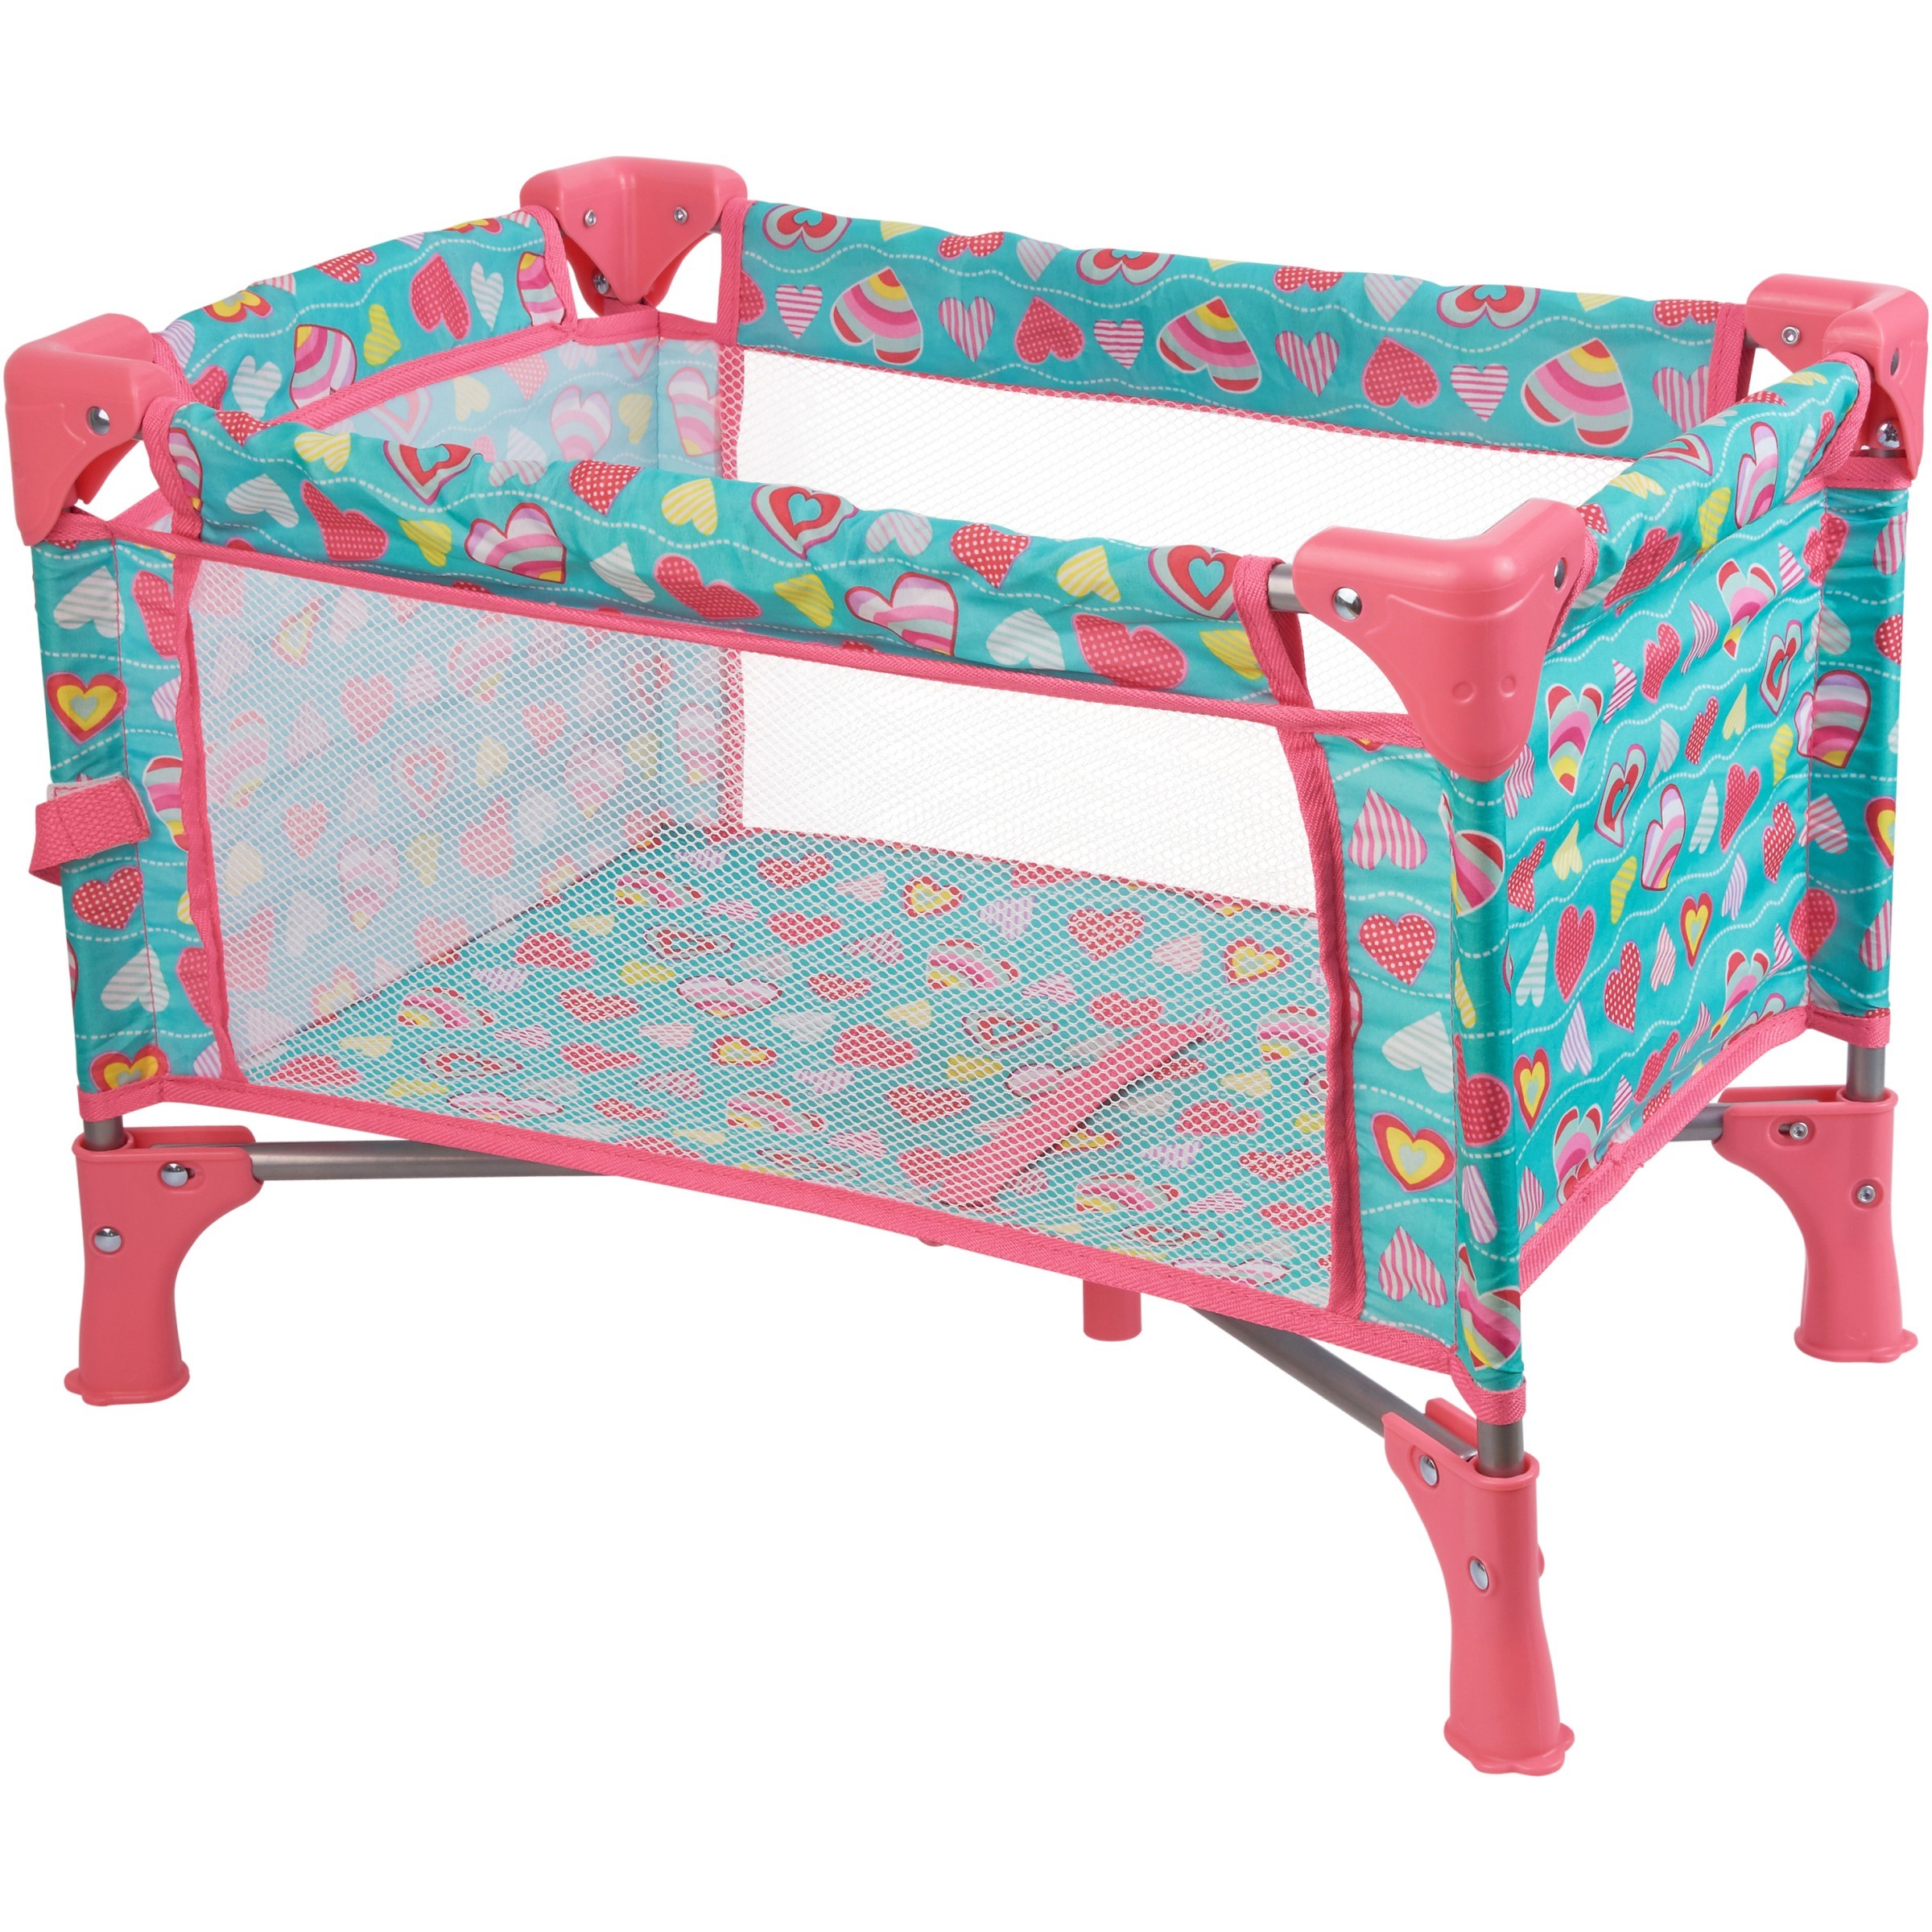 My Sweet Love Folding Play Pen